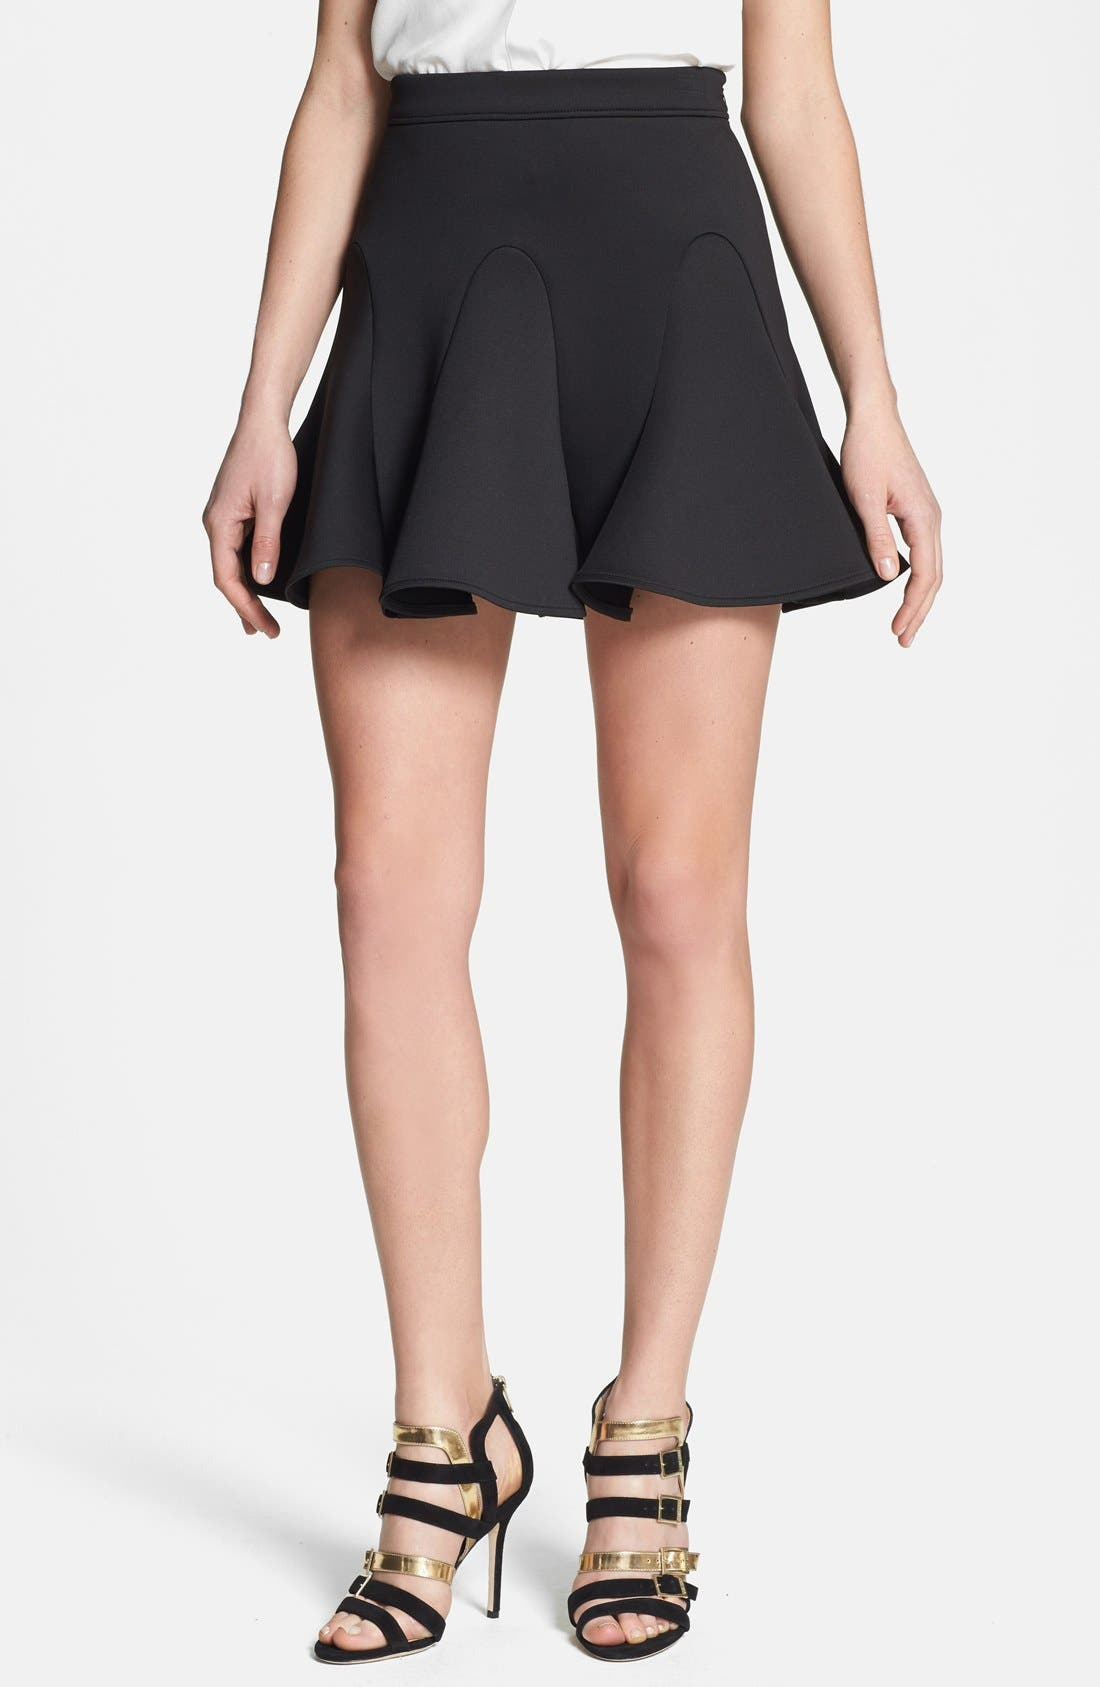 Alternate Image 1 Selected - Rebecca Minkoff 'Tulum' Flare Skirt